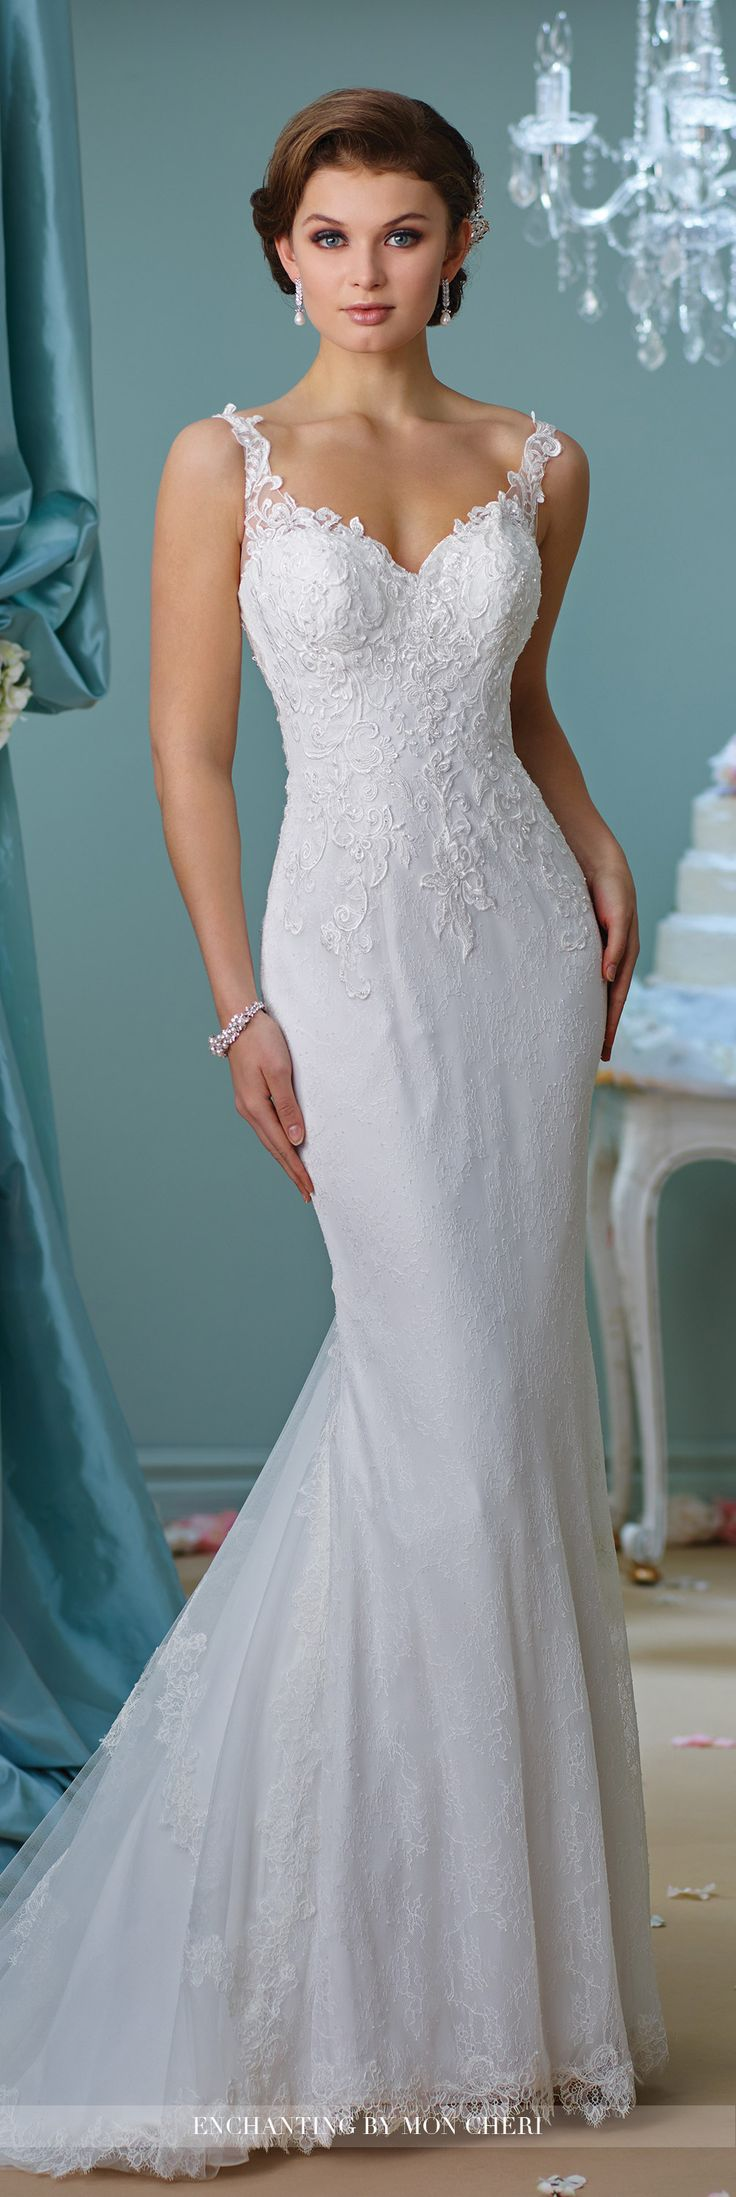 Best 25 lace wedding gowns ideas on pinterest lace for Wedding dresses with dramatic backs